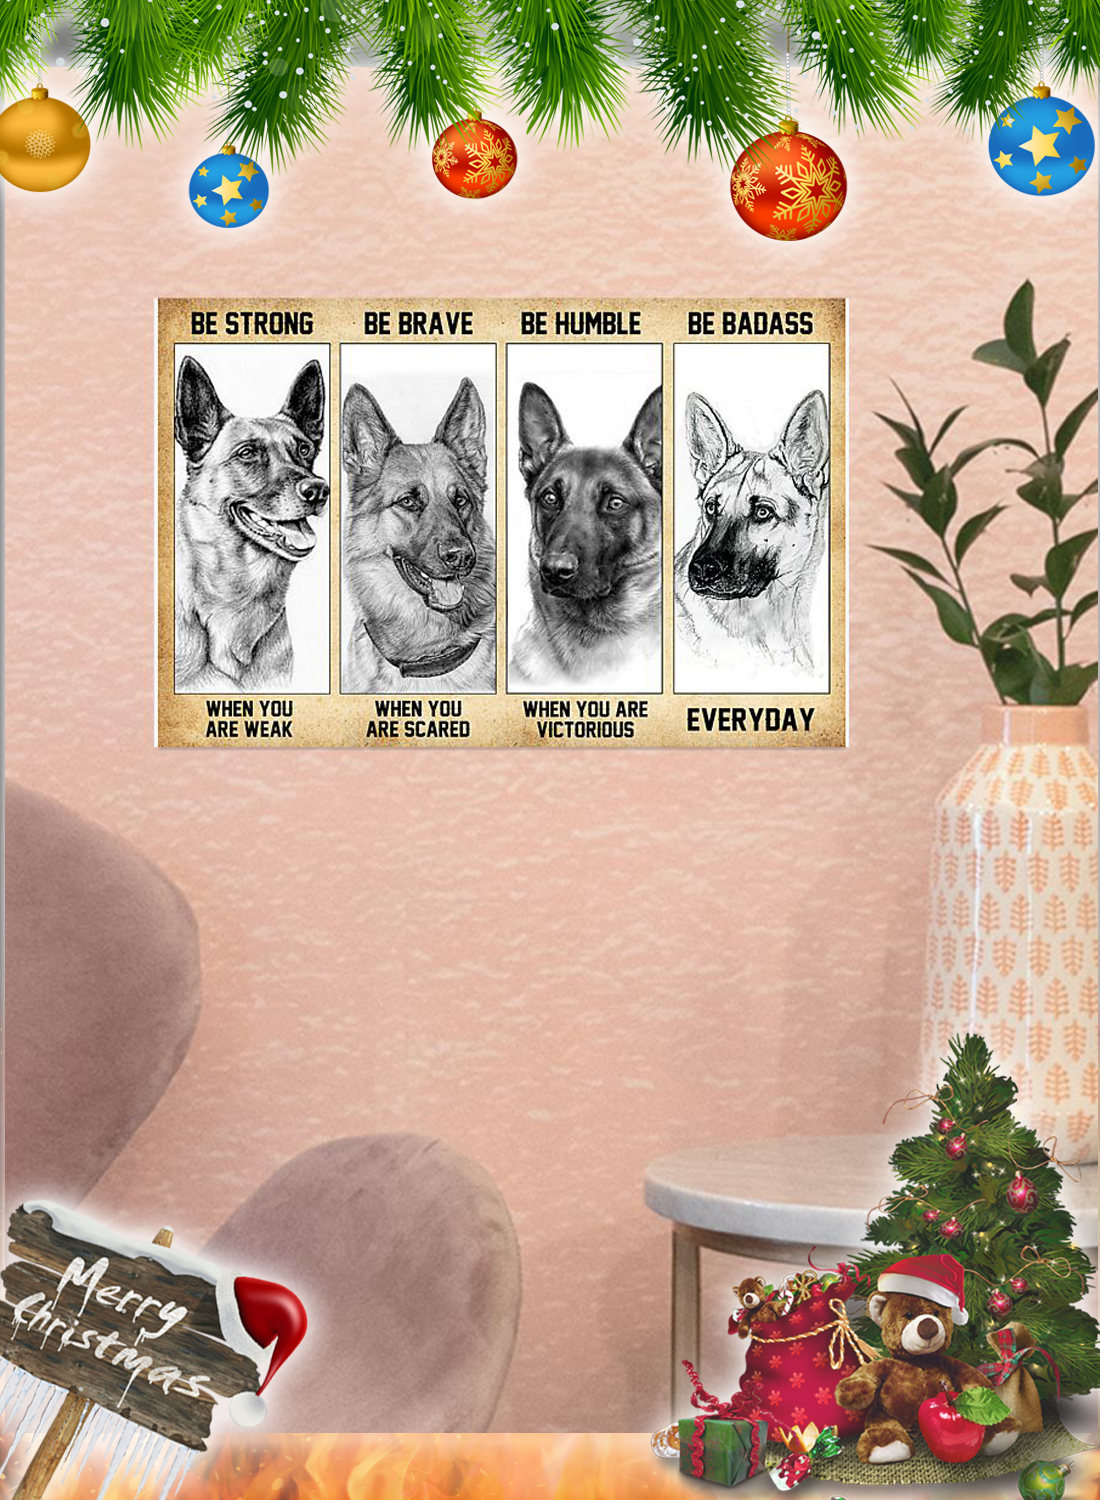 Malinois dog Be strong be brave be humble be badass poster 2